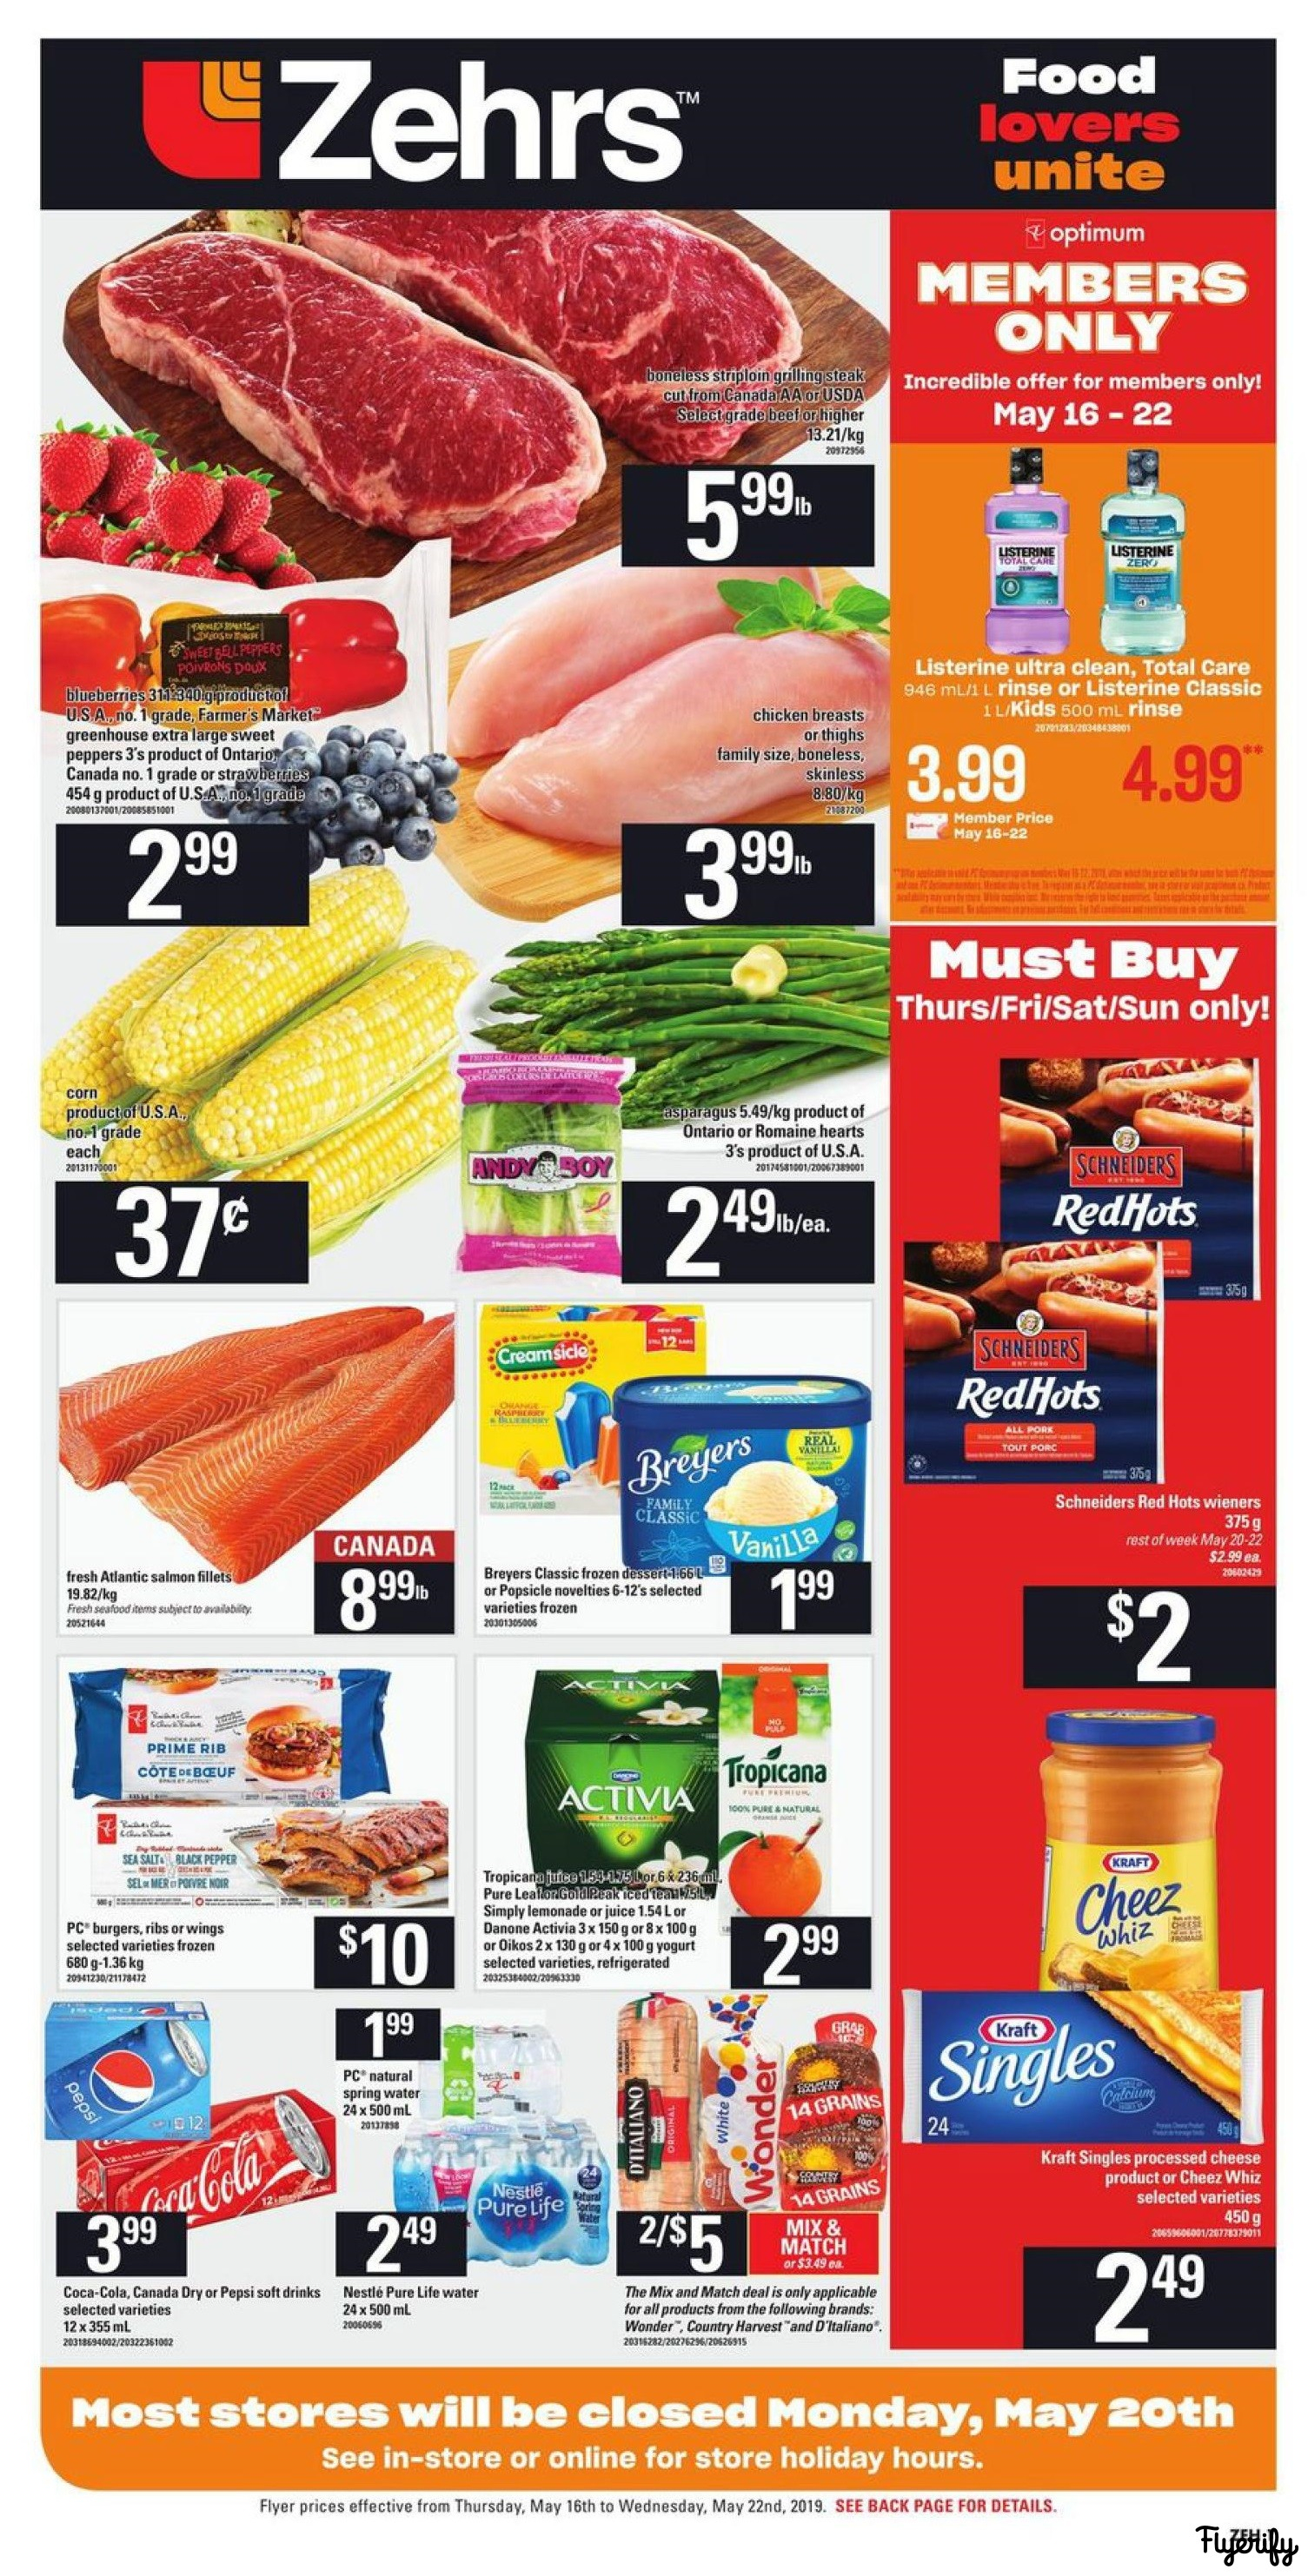 Zehrs Flyer May 16 To 22 Canada within dimensions 1505 X 2965